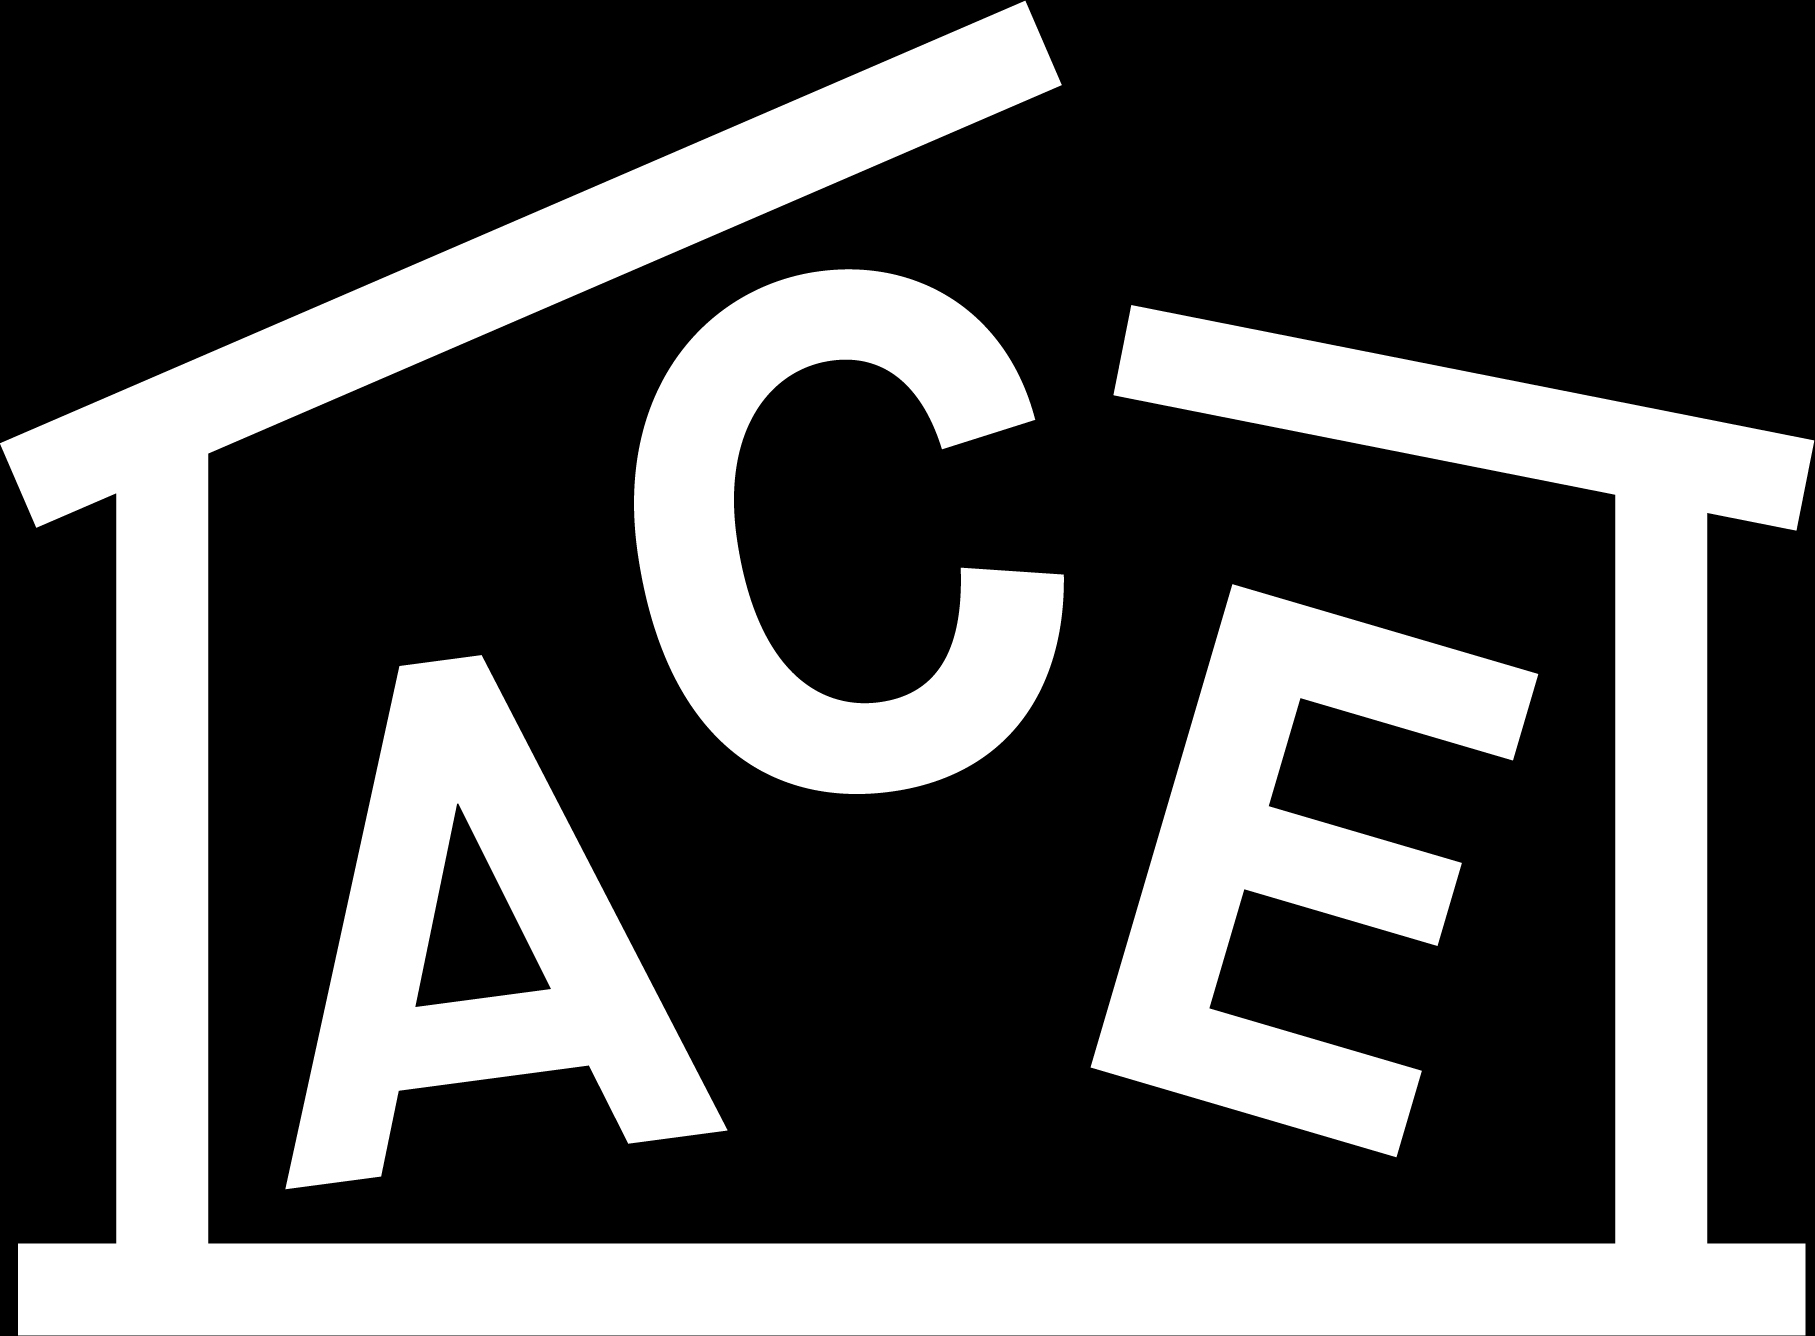 ACE-AceOpen-Logo-01A-HiRes inverted.jpg